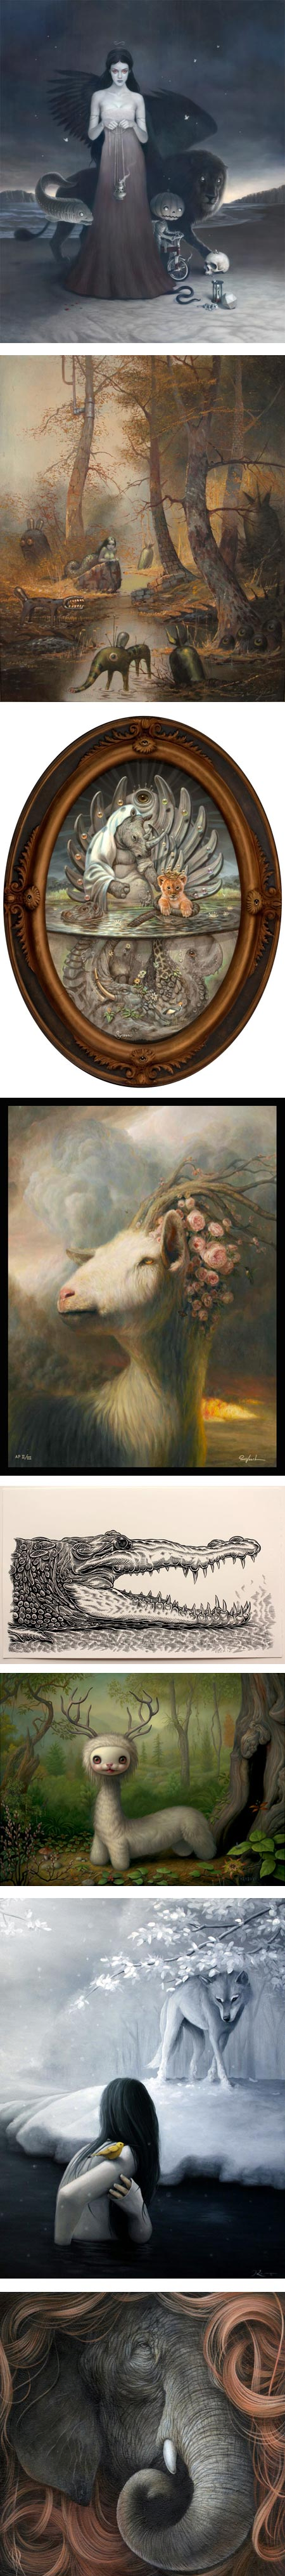 Kingdom Animalia: Tom Bagshaw,  Glenn Barr, Mark Garro, Martin Wittfooth, Mark Dean Veca, Mark Ryden, Joen Remmers, Dan May